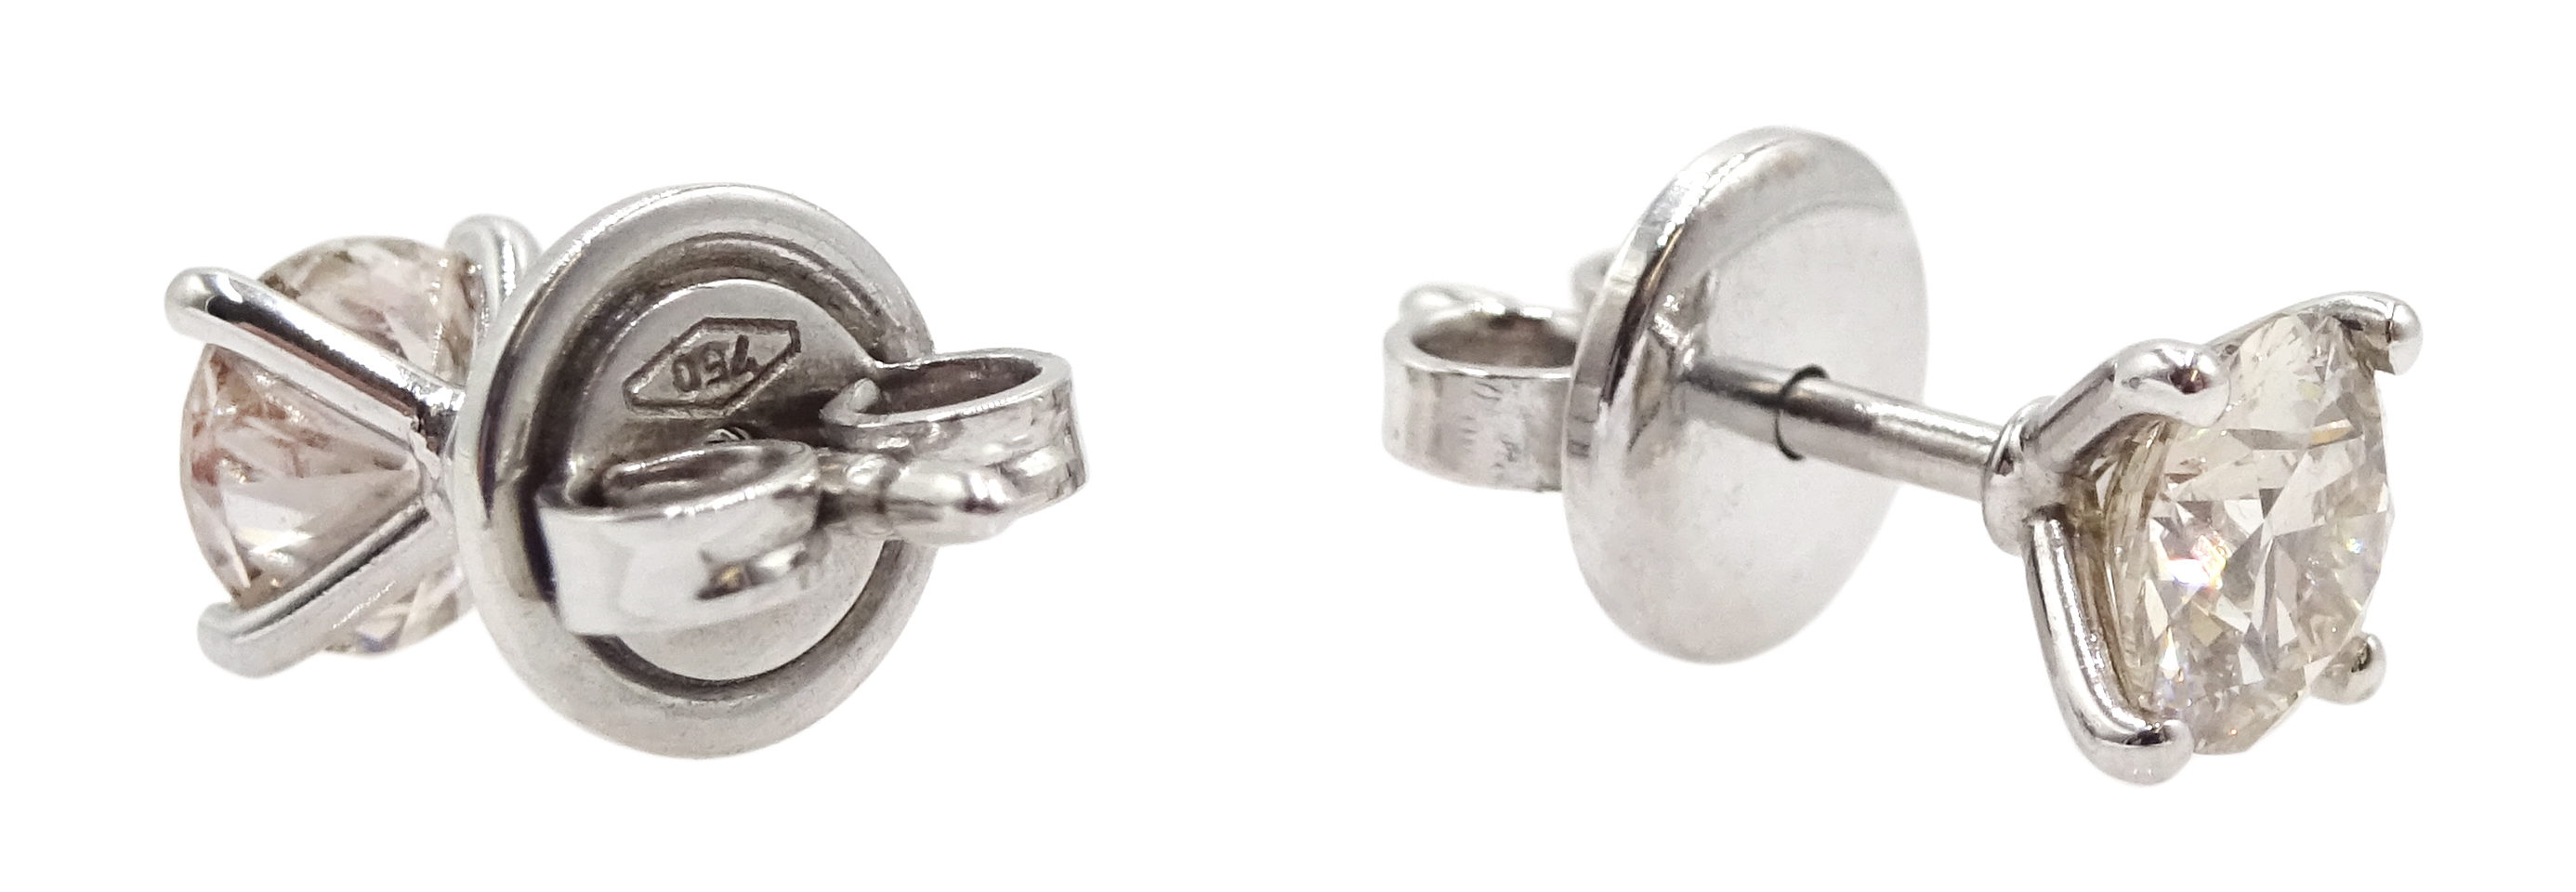 18ct white gold four claw solitaire diamond stud earrings, diamond total weight approx 1.00 carat, - Image 2 of 3